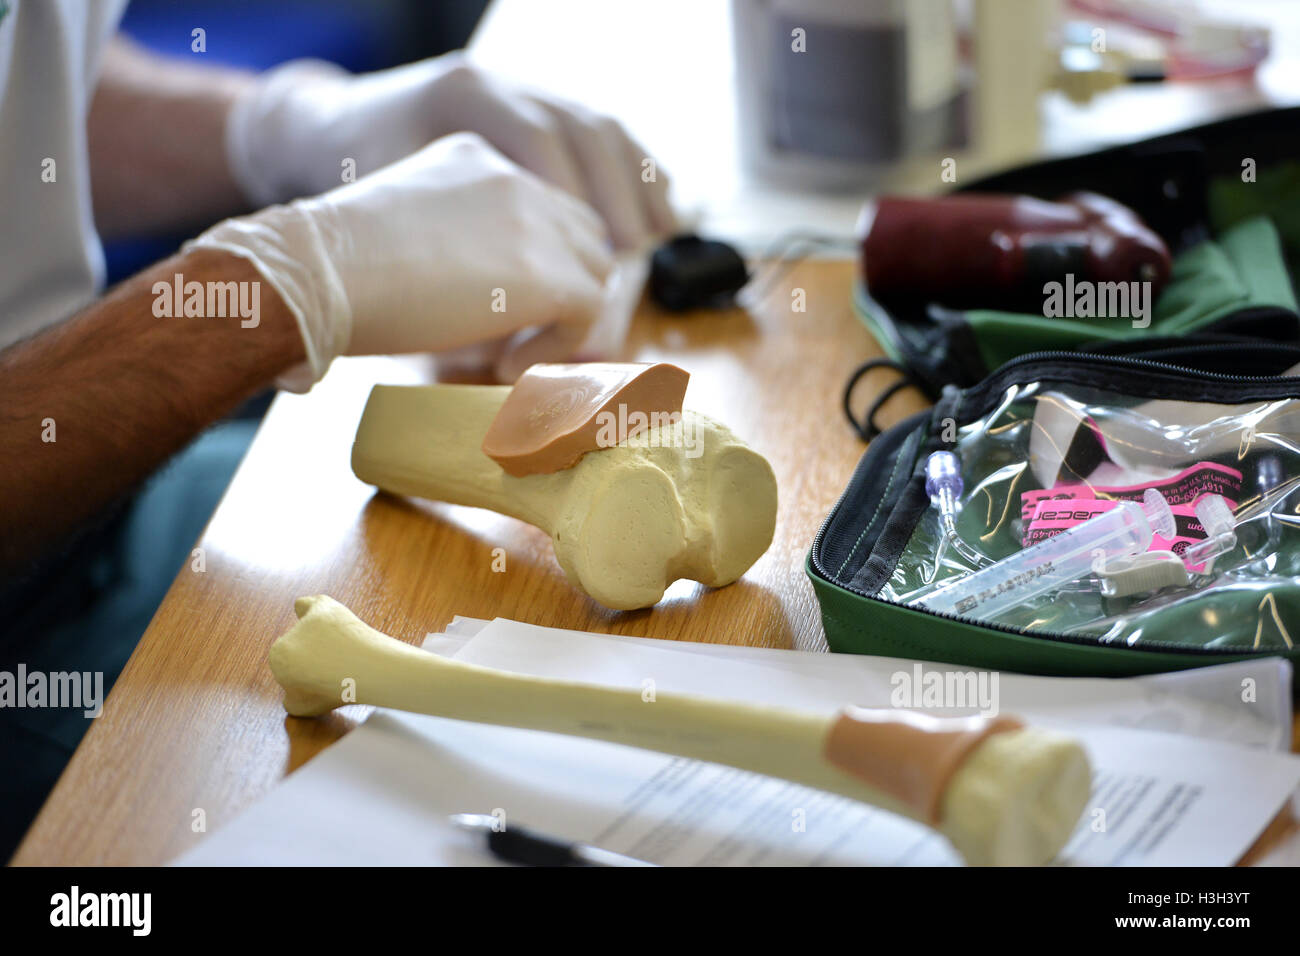 Medical trainees practicing intraosseous techniques on replica bones.. - Stock Image